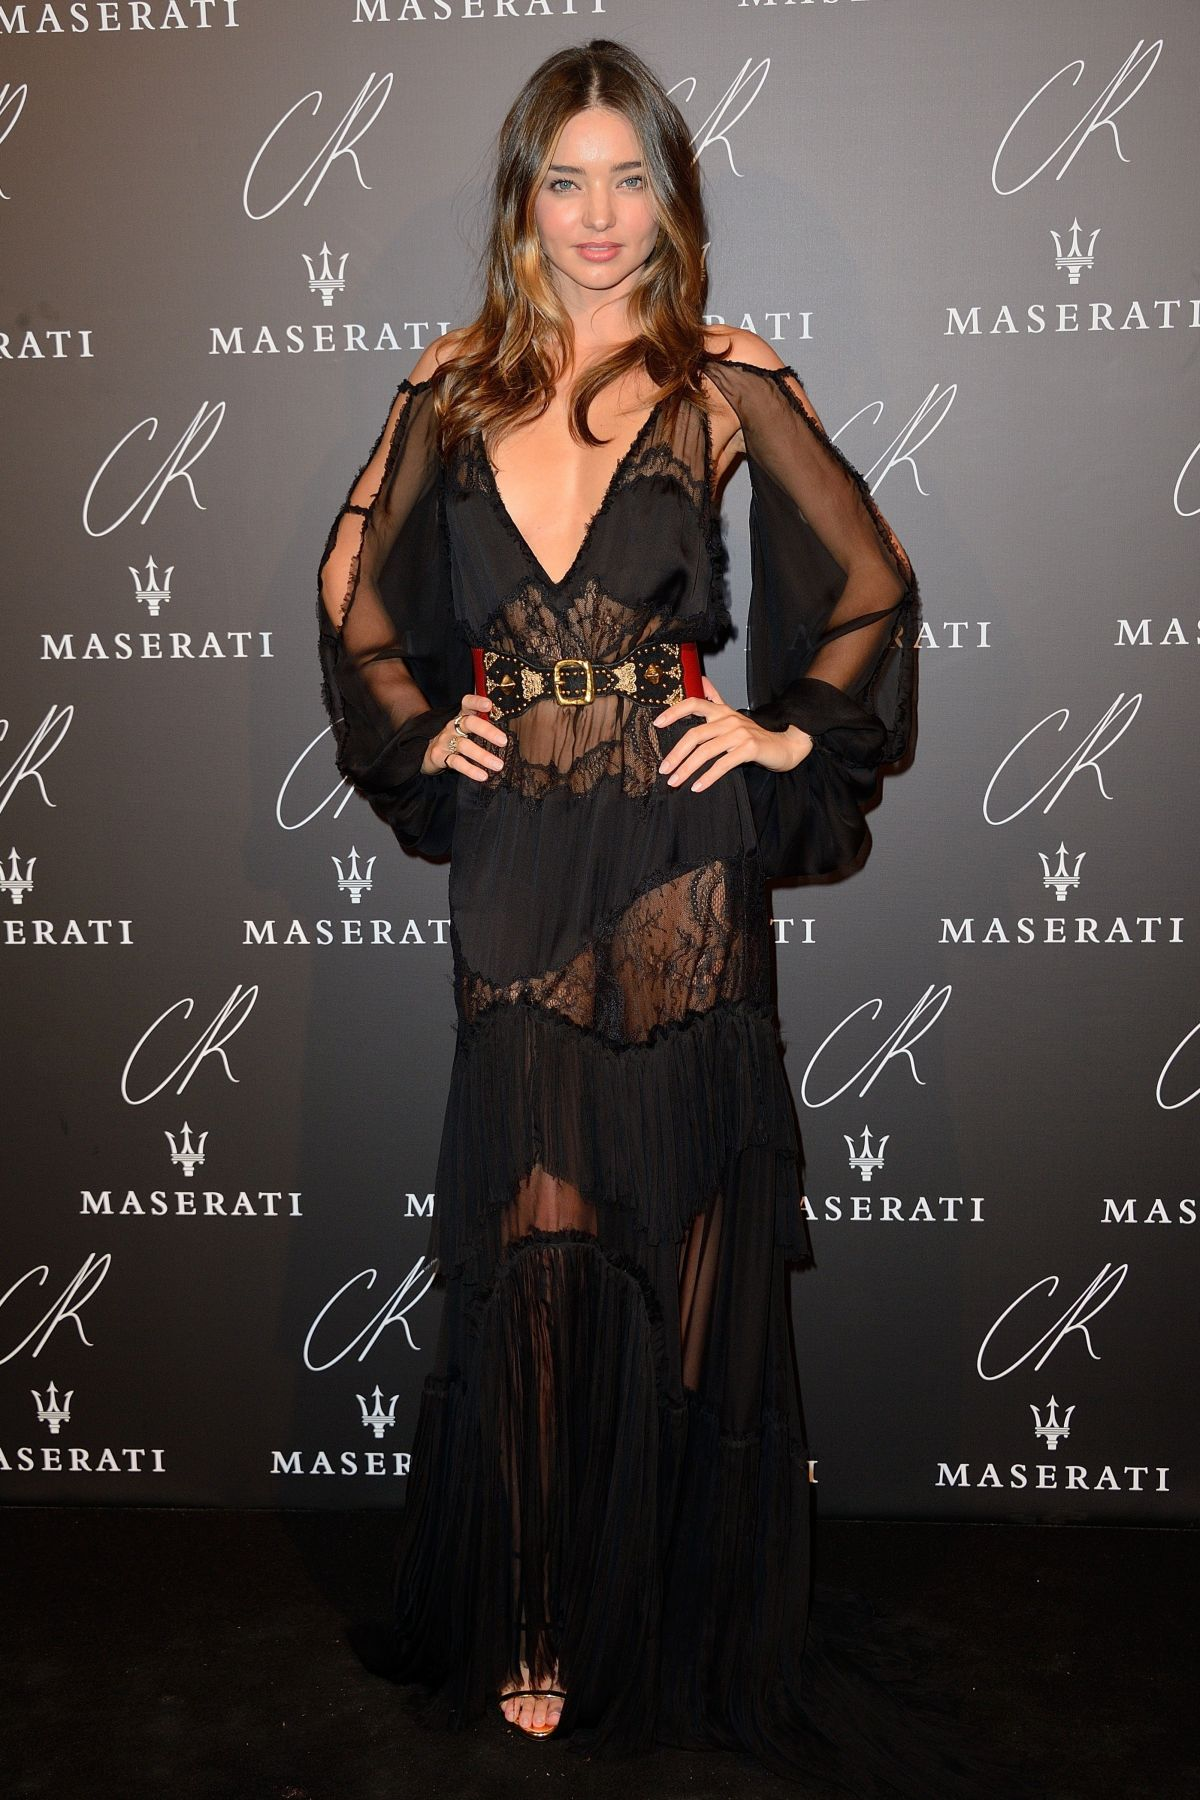 Miranda Kerr At Cr Fashion Book Issue 5 Launch Party In Paris Hawtcelebs Hawtcelebs